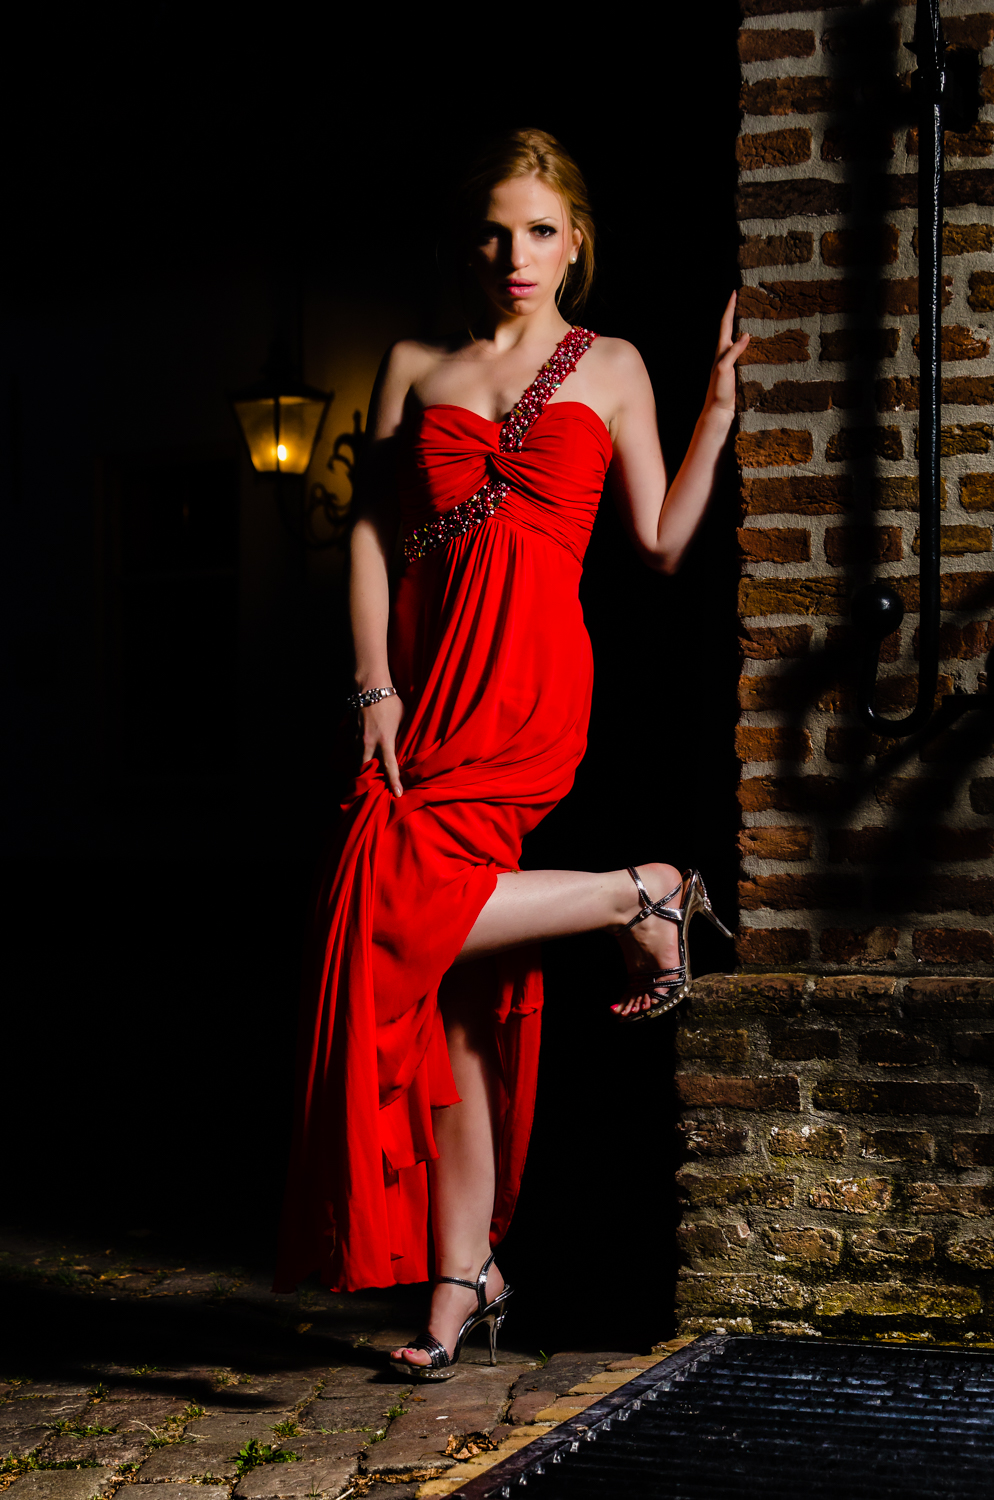 Red temptation. Exposure: 1/25 sec @ f/4,5 ISO 400, 46 mm, flash fired off camera right. Klik om te vergroten.